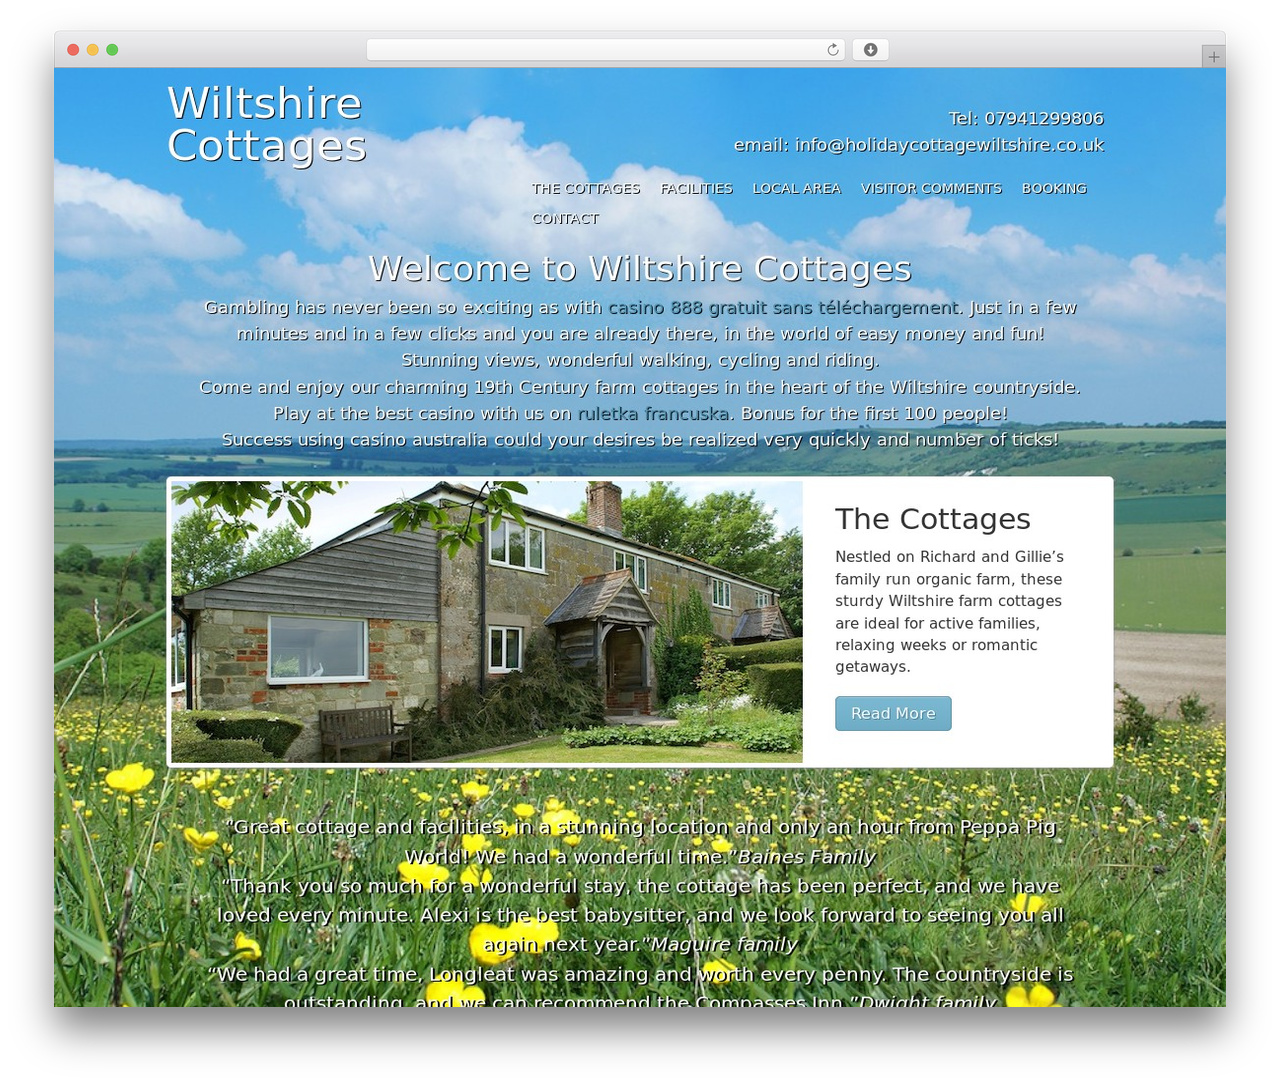 WordPress theme Agency Child Theme - holidaycottagewiltshire.co.uk